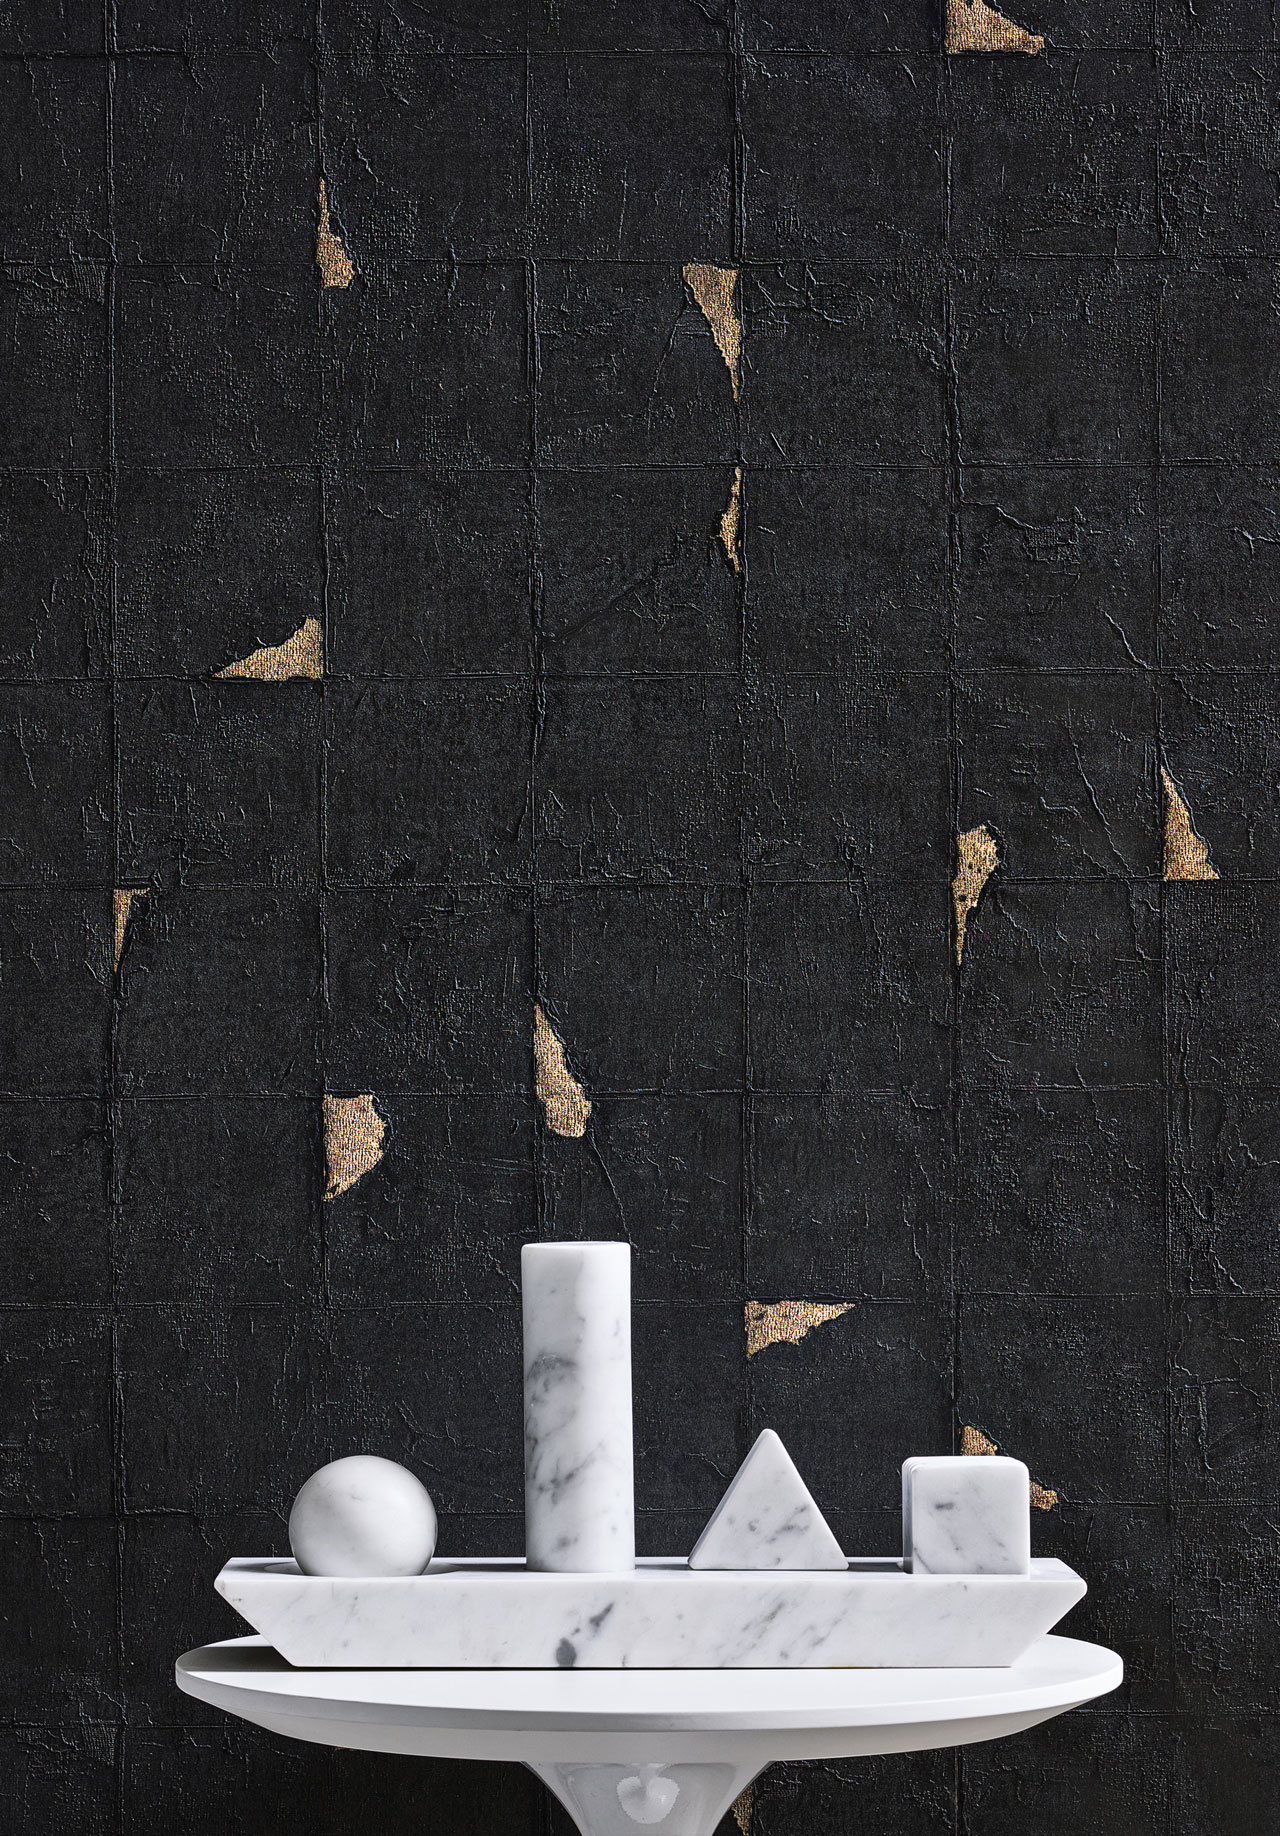 christian benini unfolds the secrets of wall&decò wallpapers | yatzer